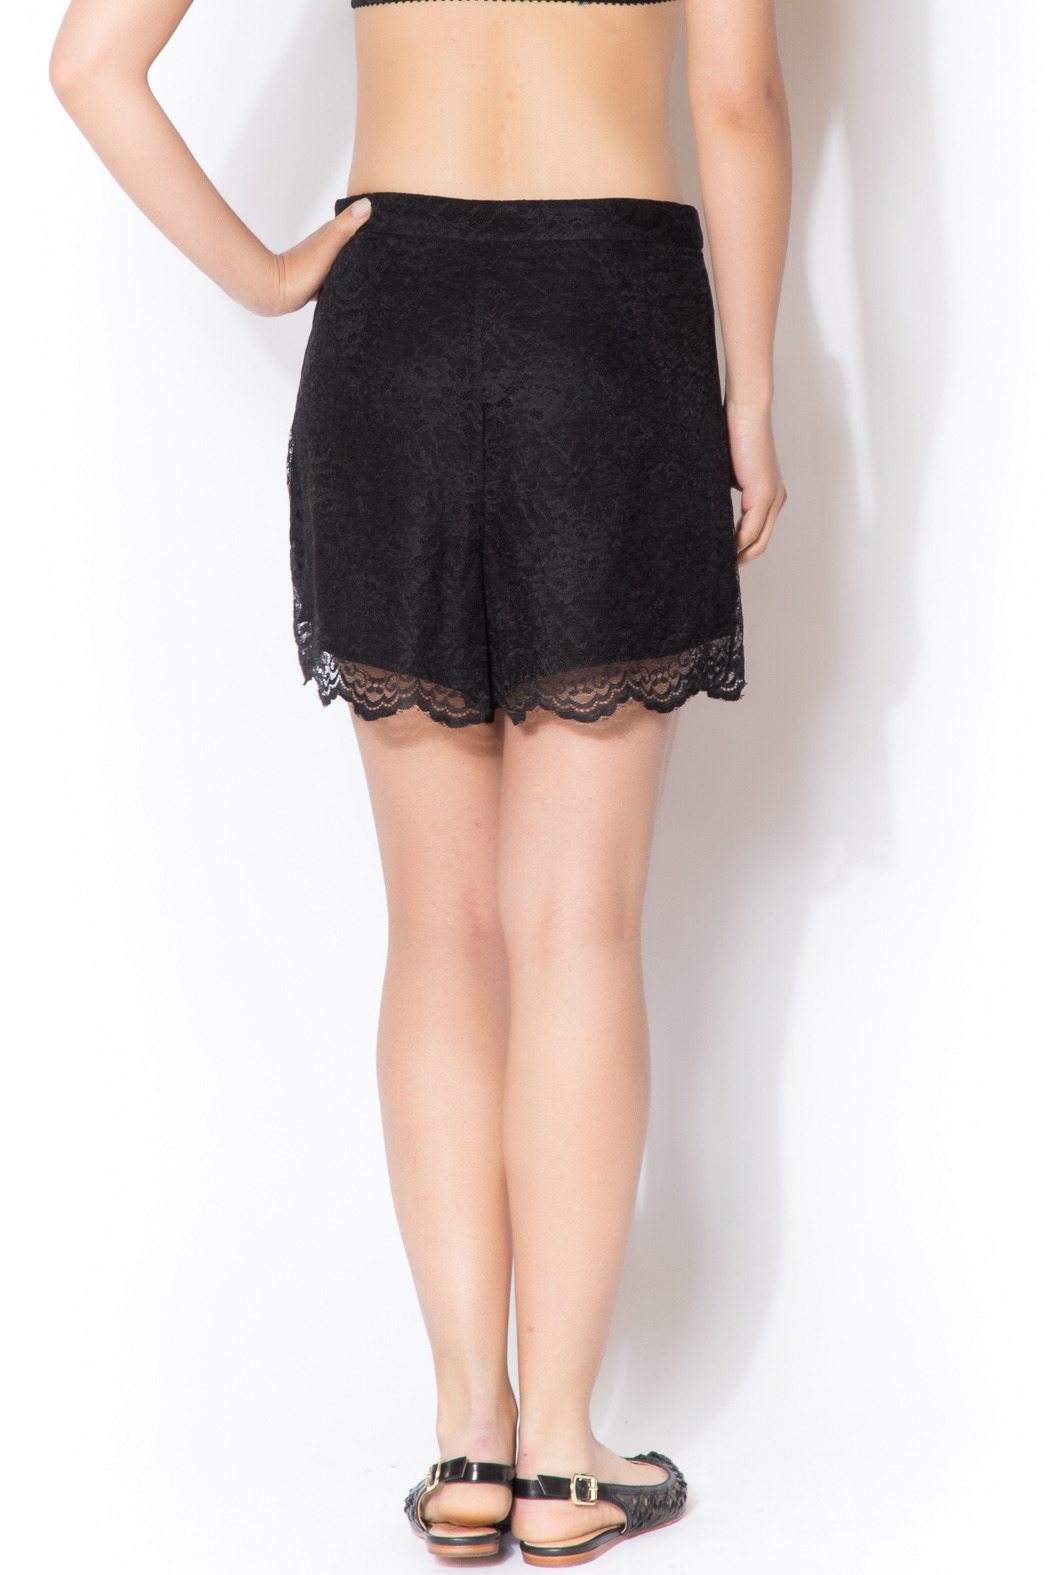 CCH Collection Lace Black Shorts - Back Cropped Image